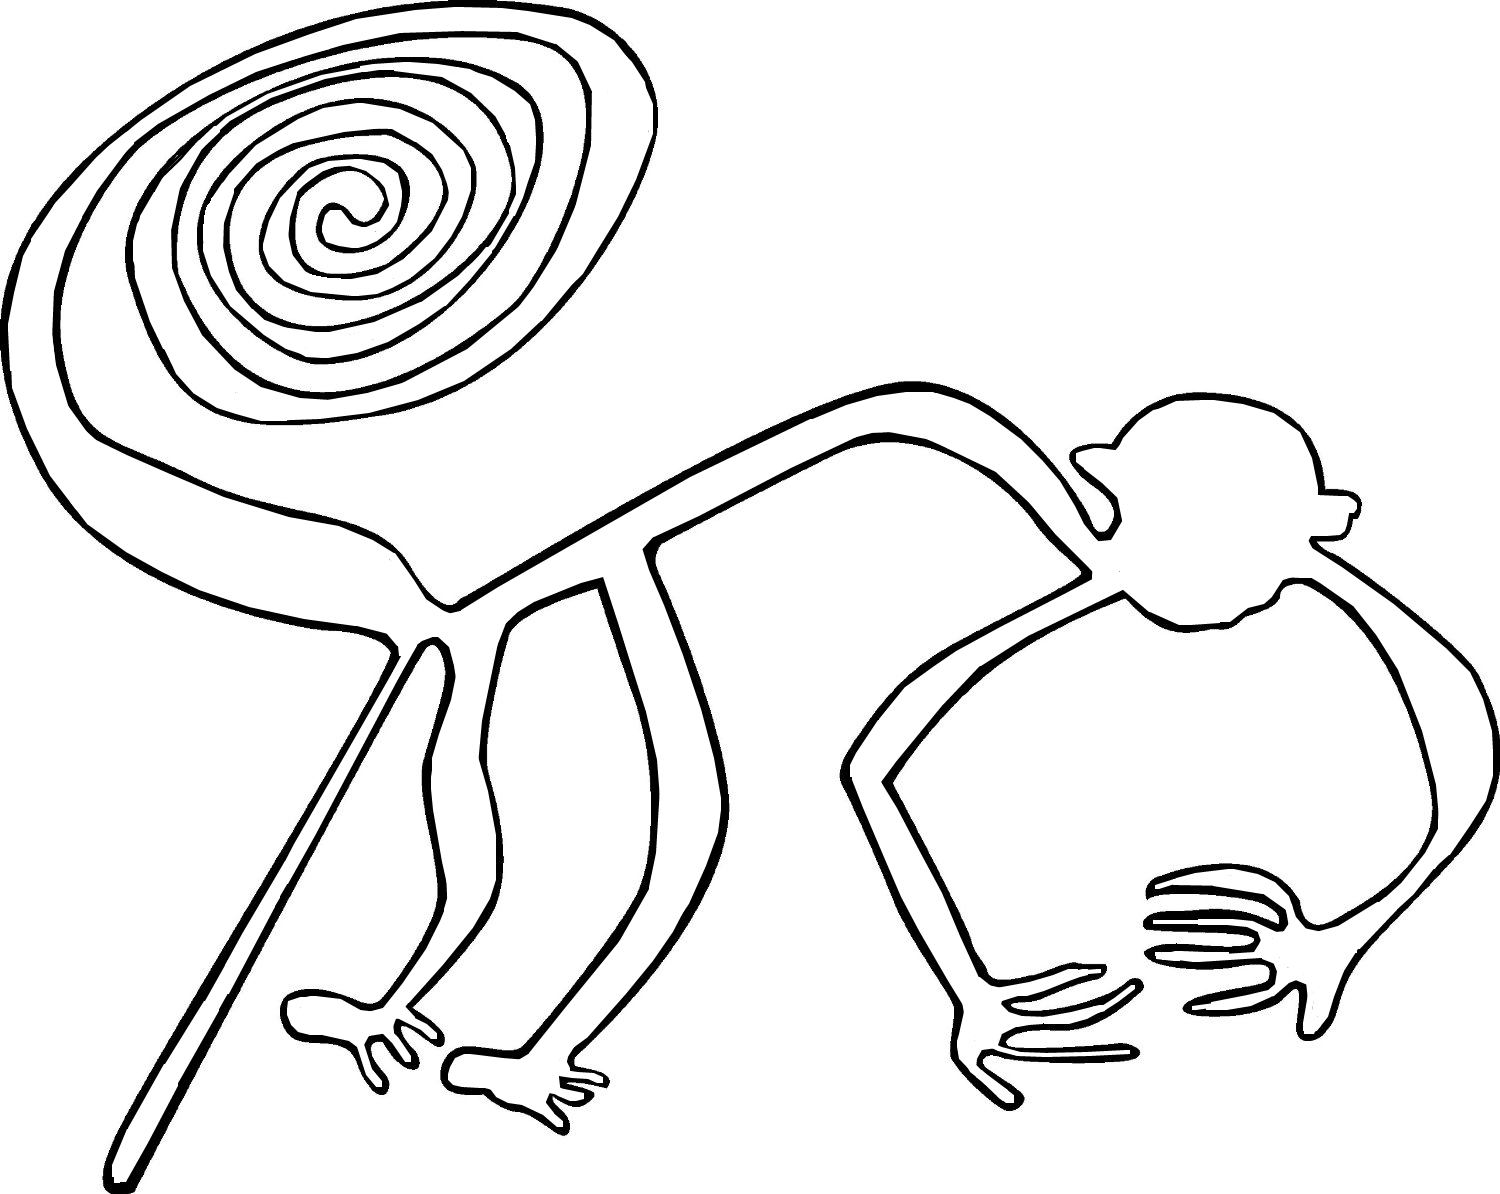 Line Drawing Monkey : Art lesson nazca plateau contour line drawing